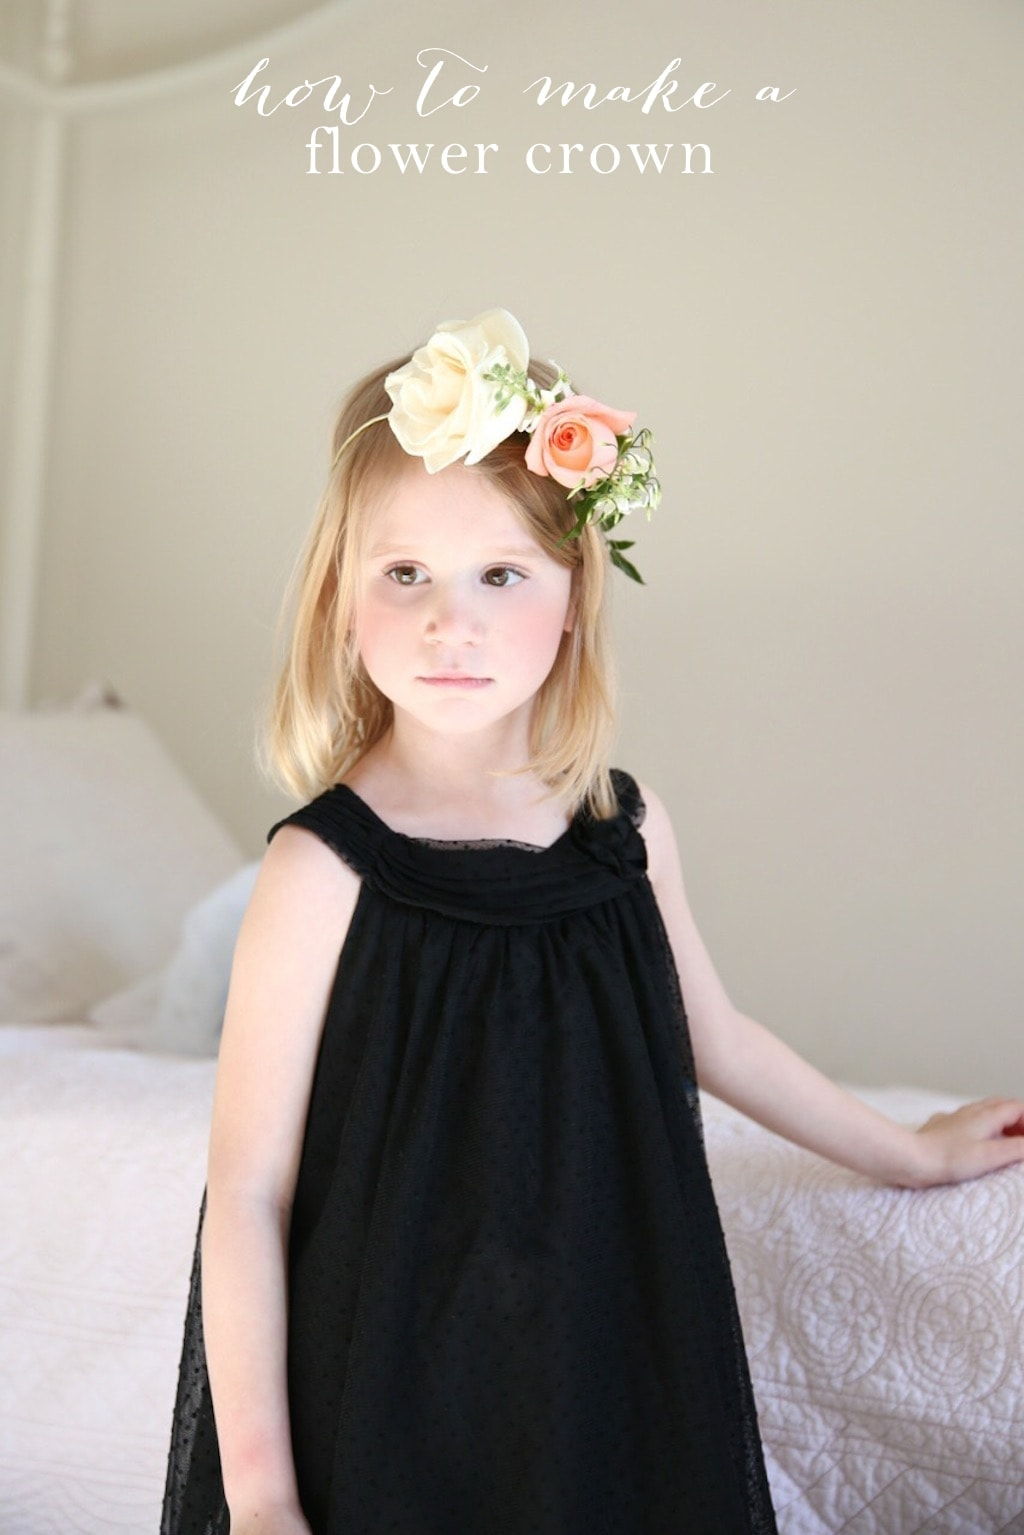 Diy flower crown tutorial diy flower crown izmirmasajfo Gallery